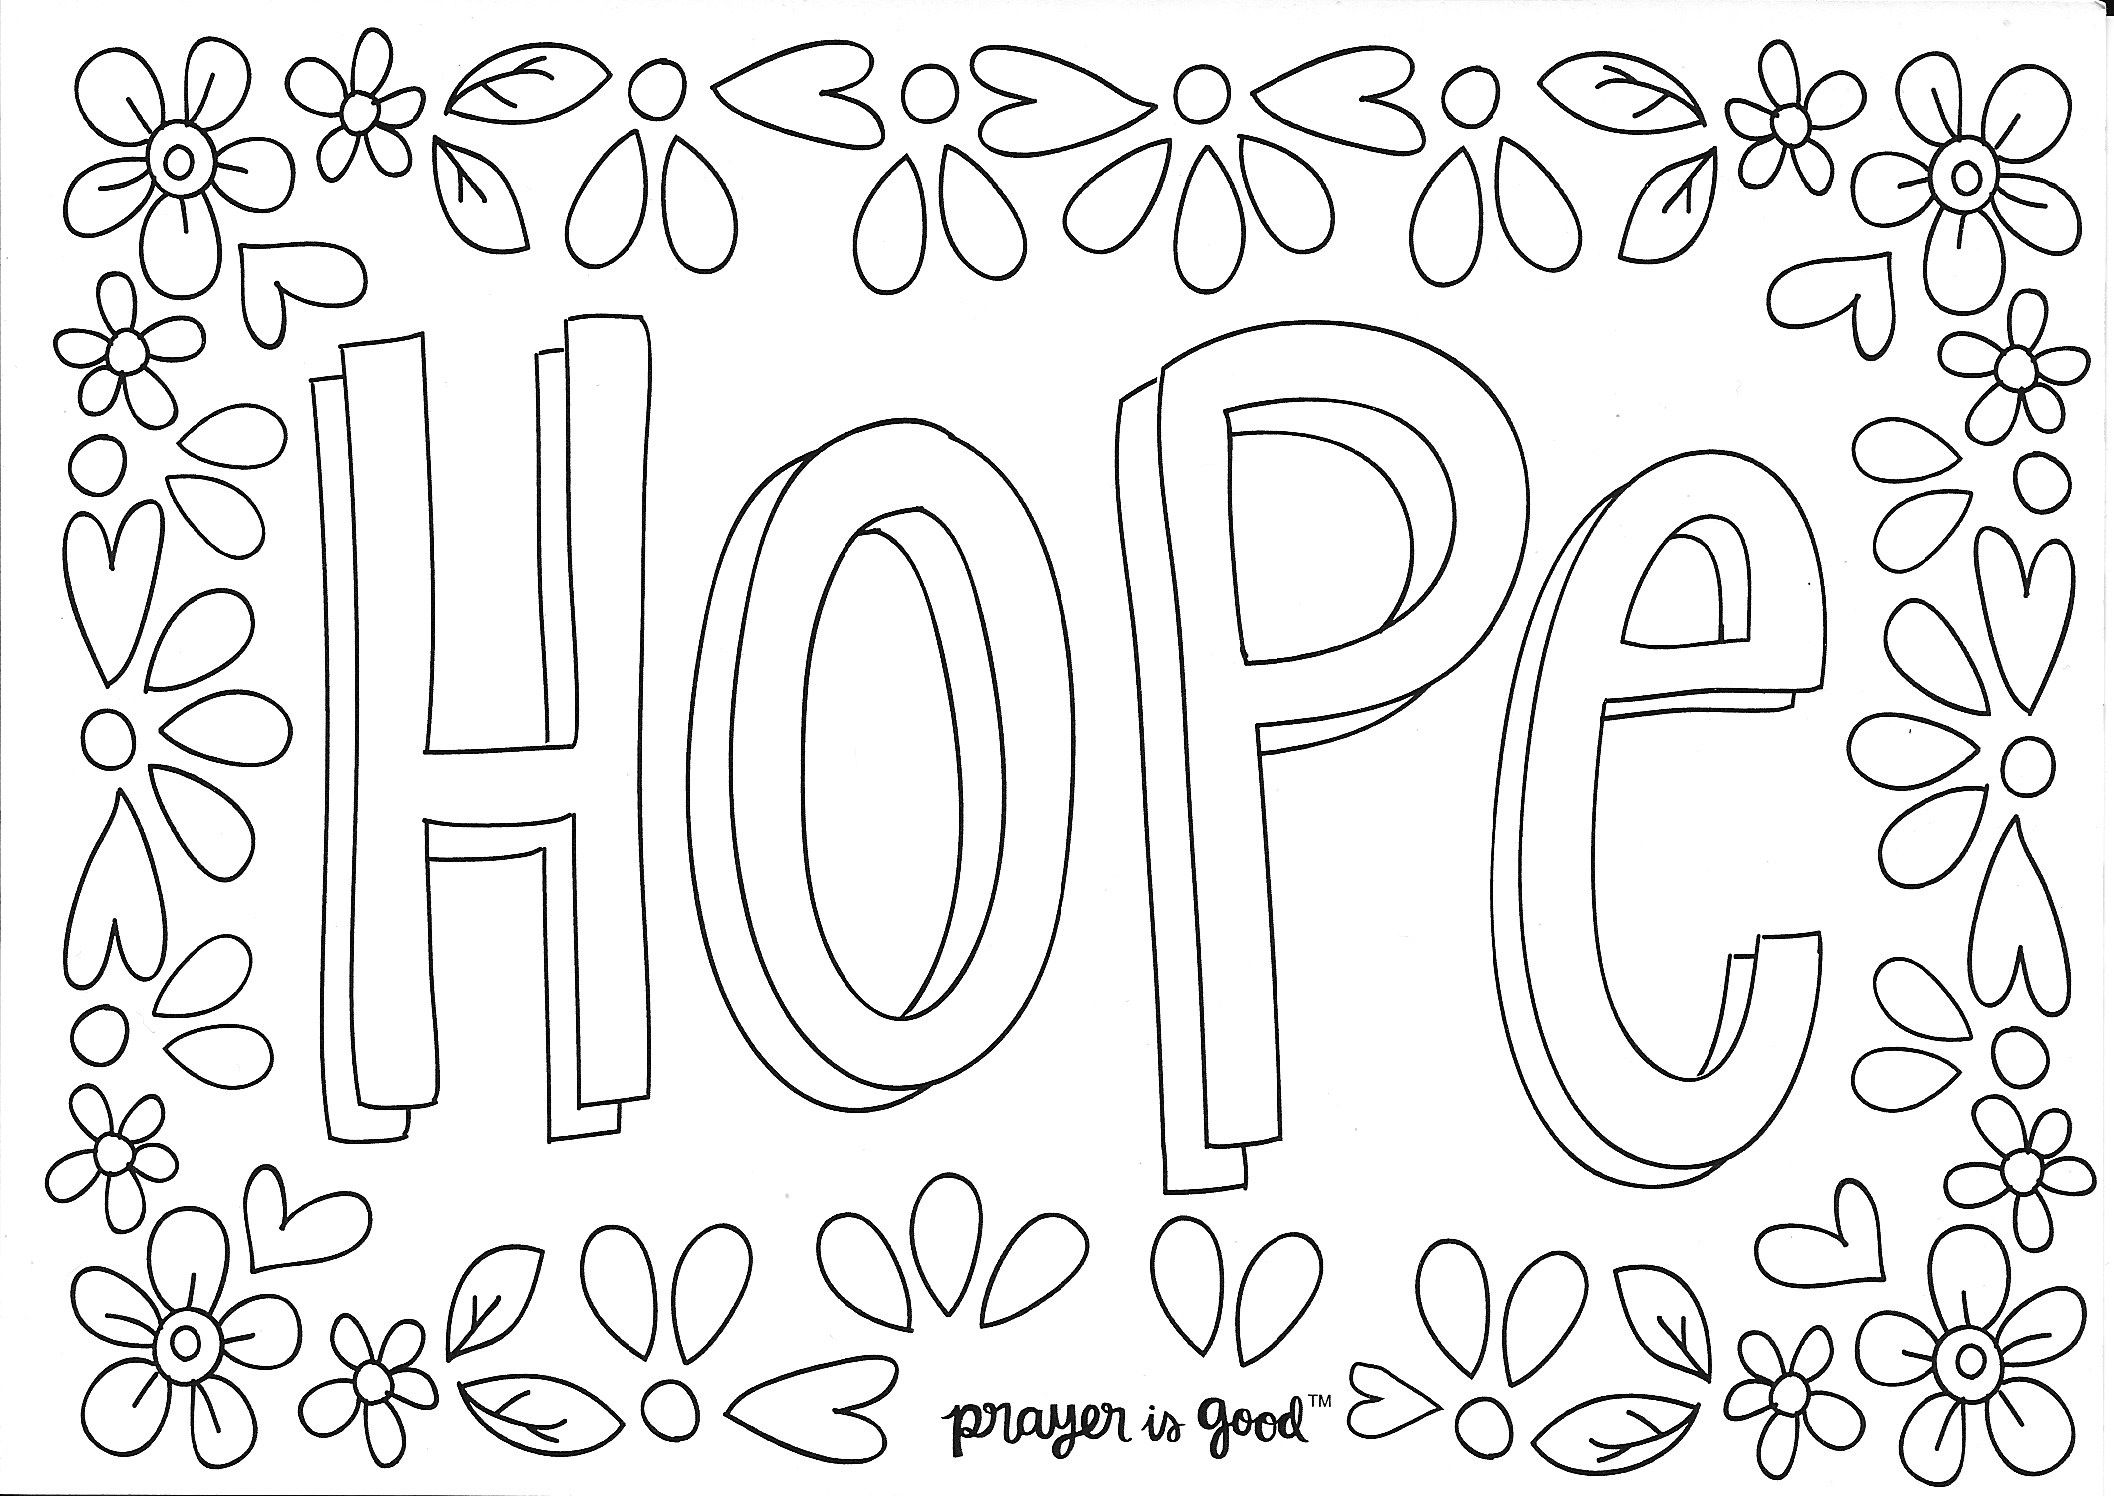 Coloring pages for down syndrome adults - Color Our Hope Postcard And Send To Somebody In Need